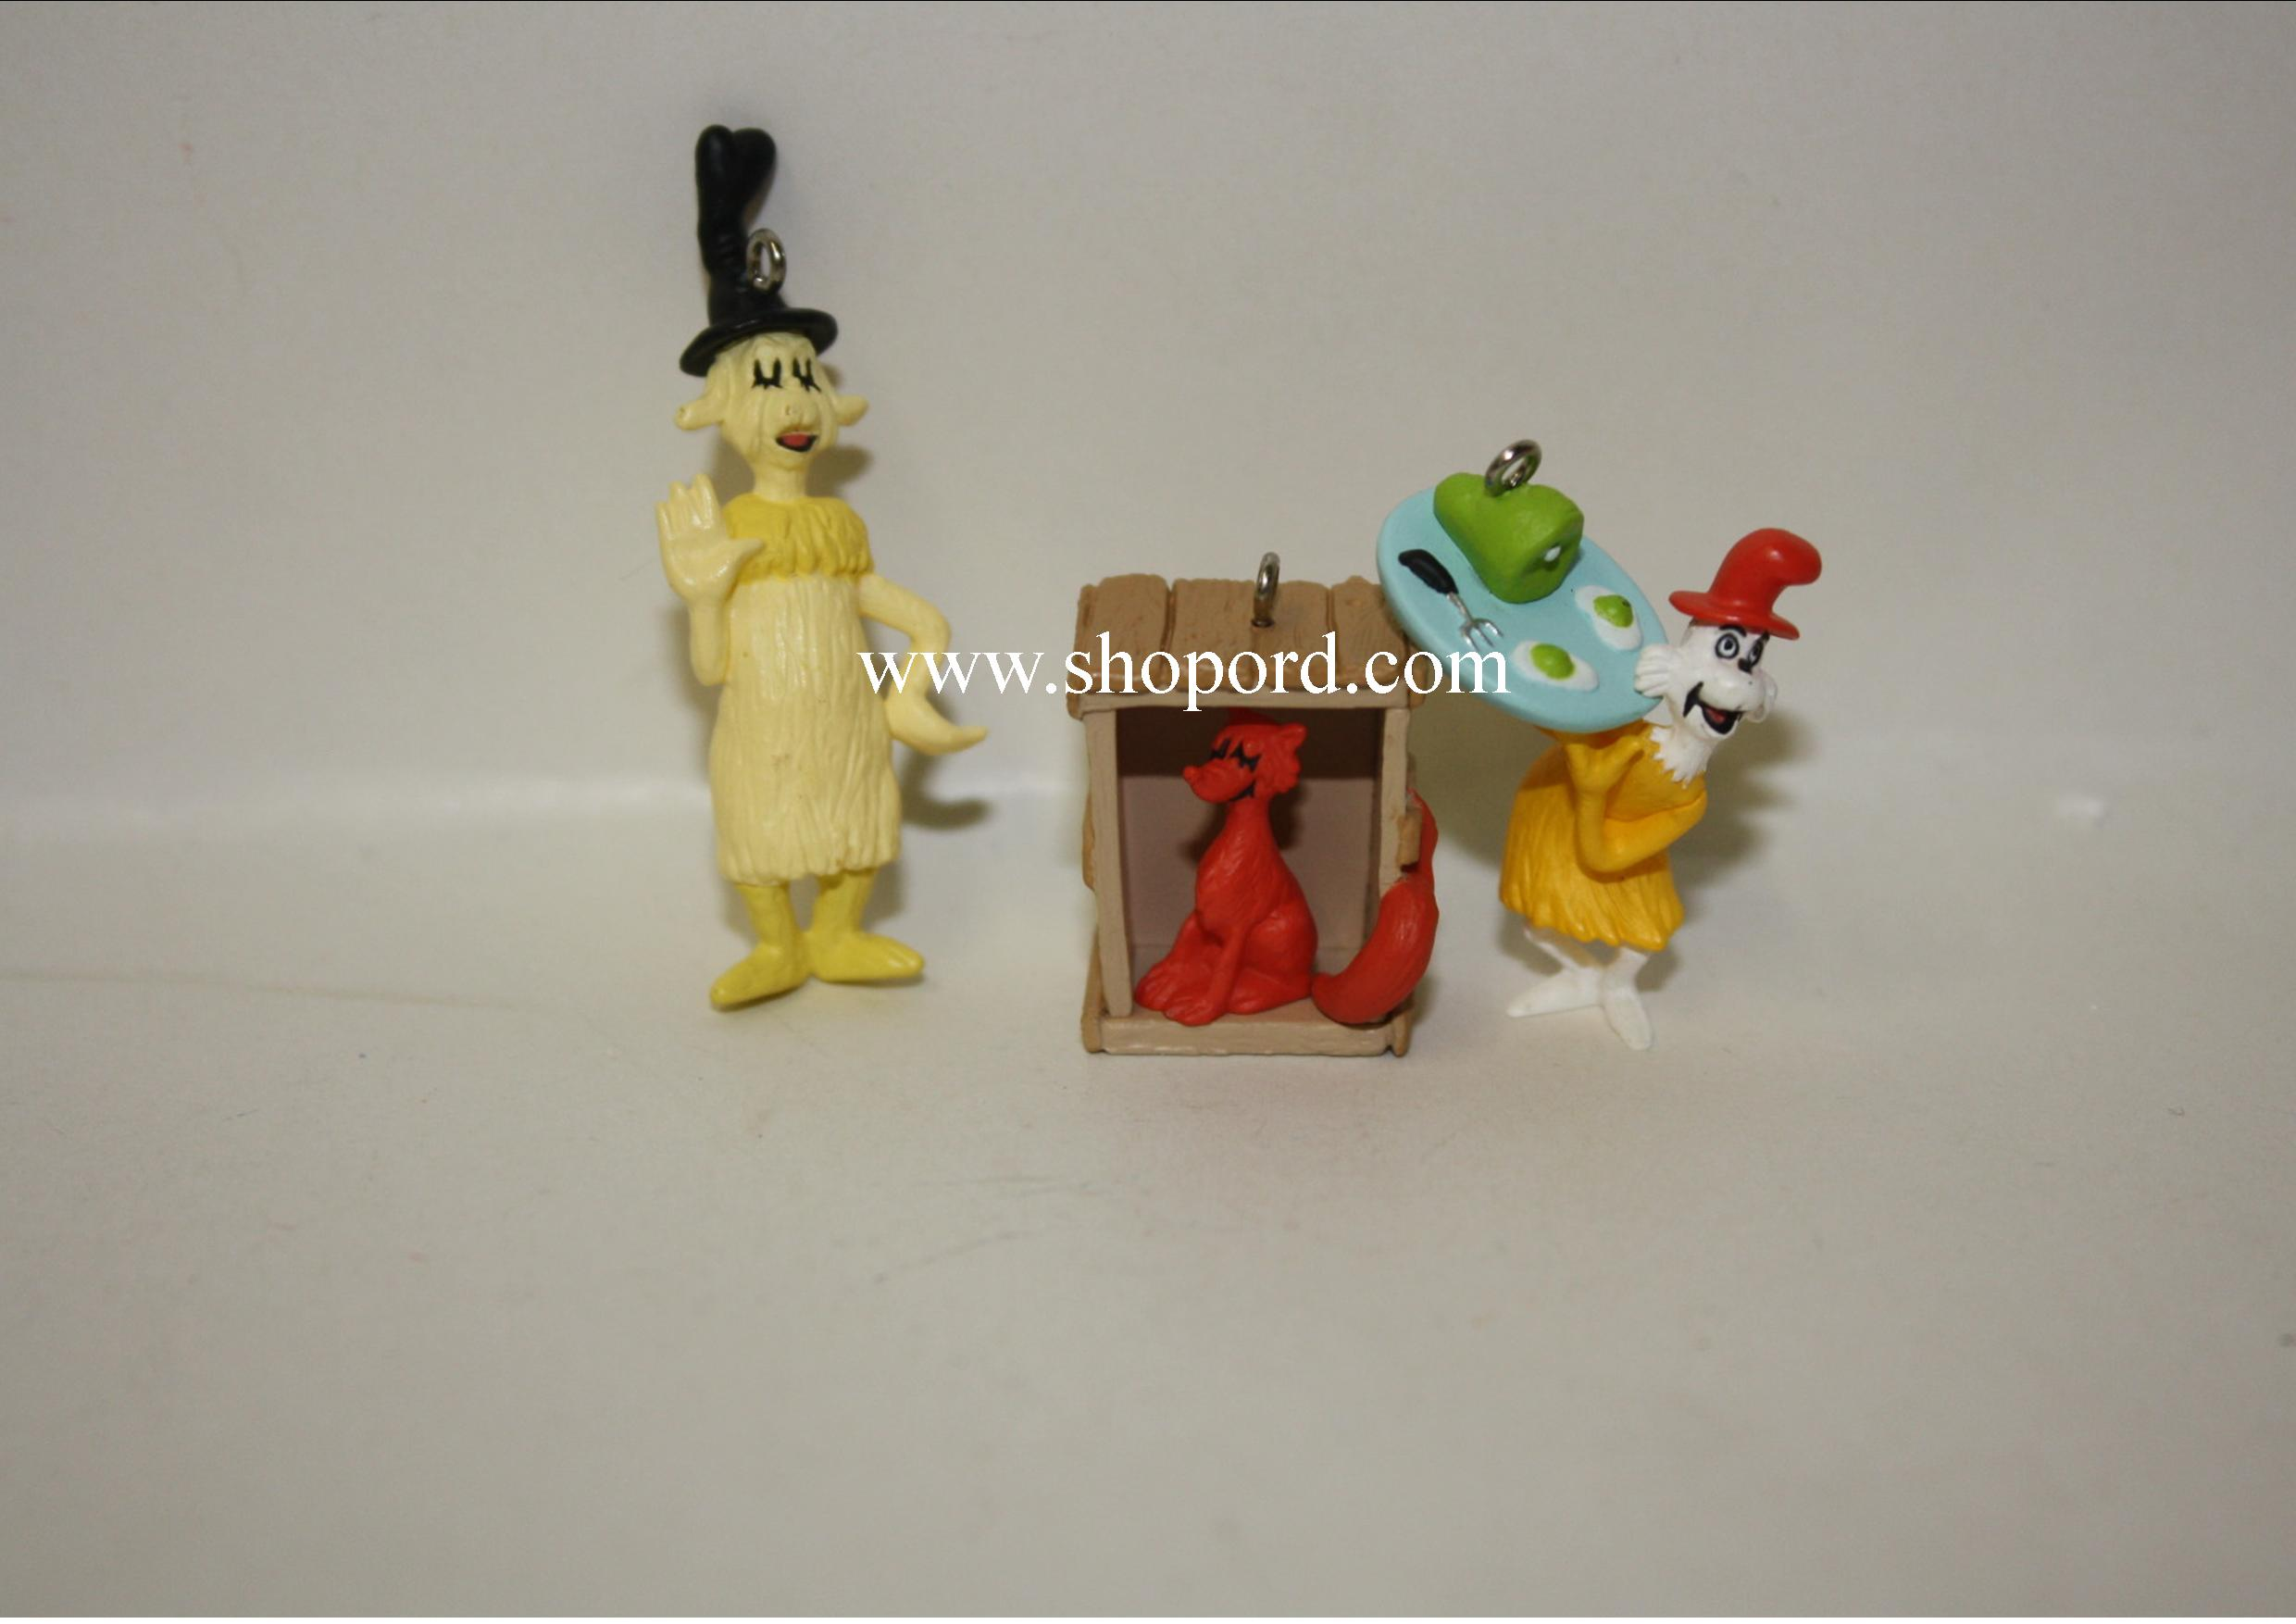 Hallmark 2000 Dr Seuss Green Eggs And Ham Set of 3 Miniature Ornament QXM6034